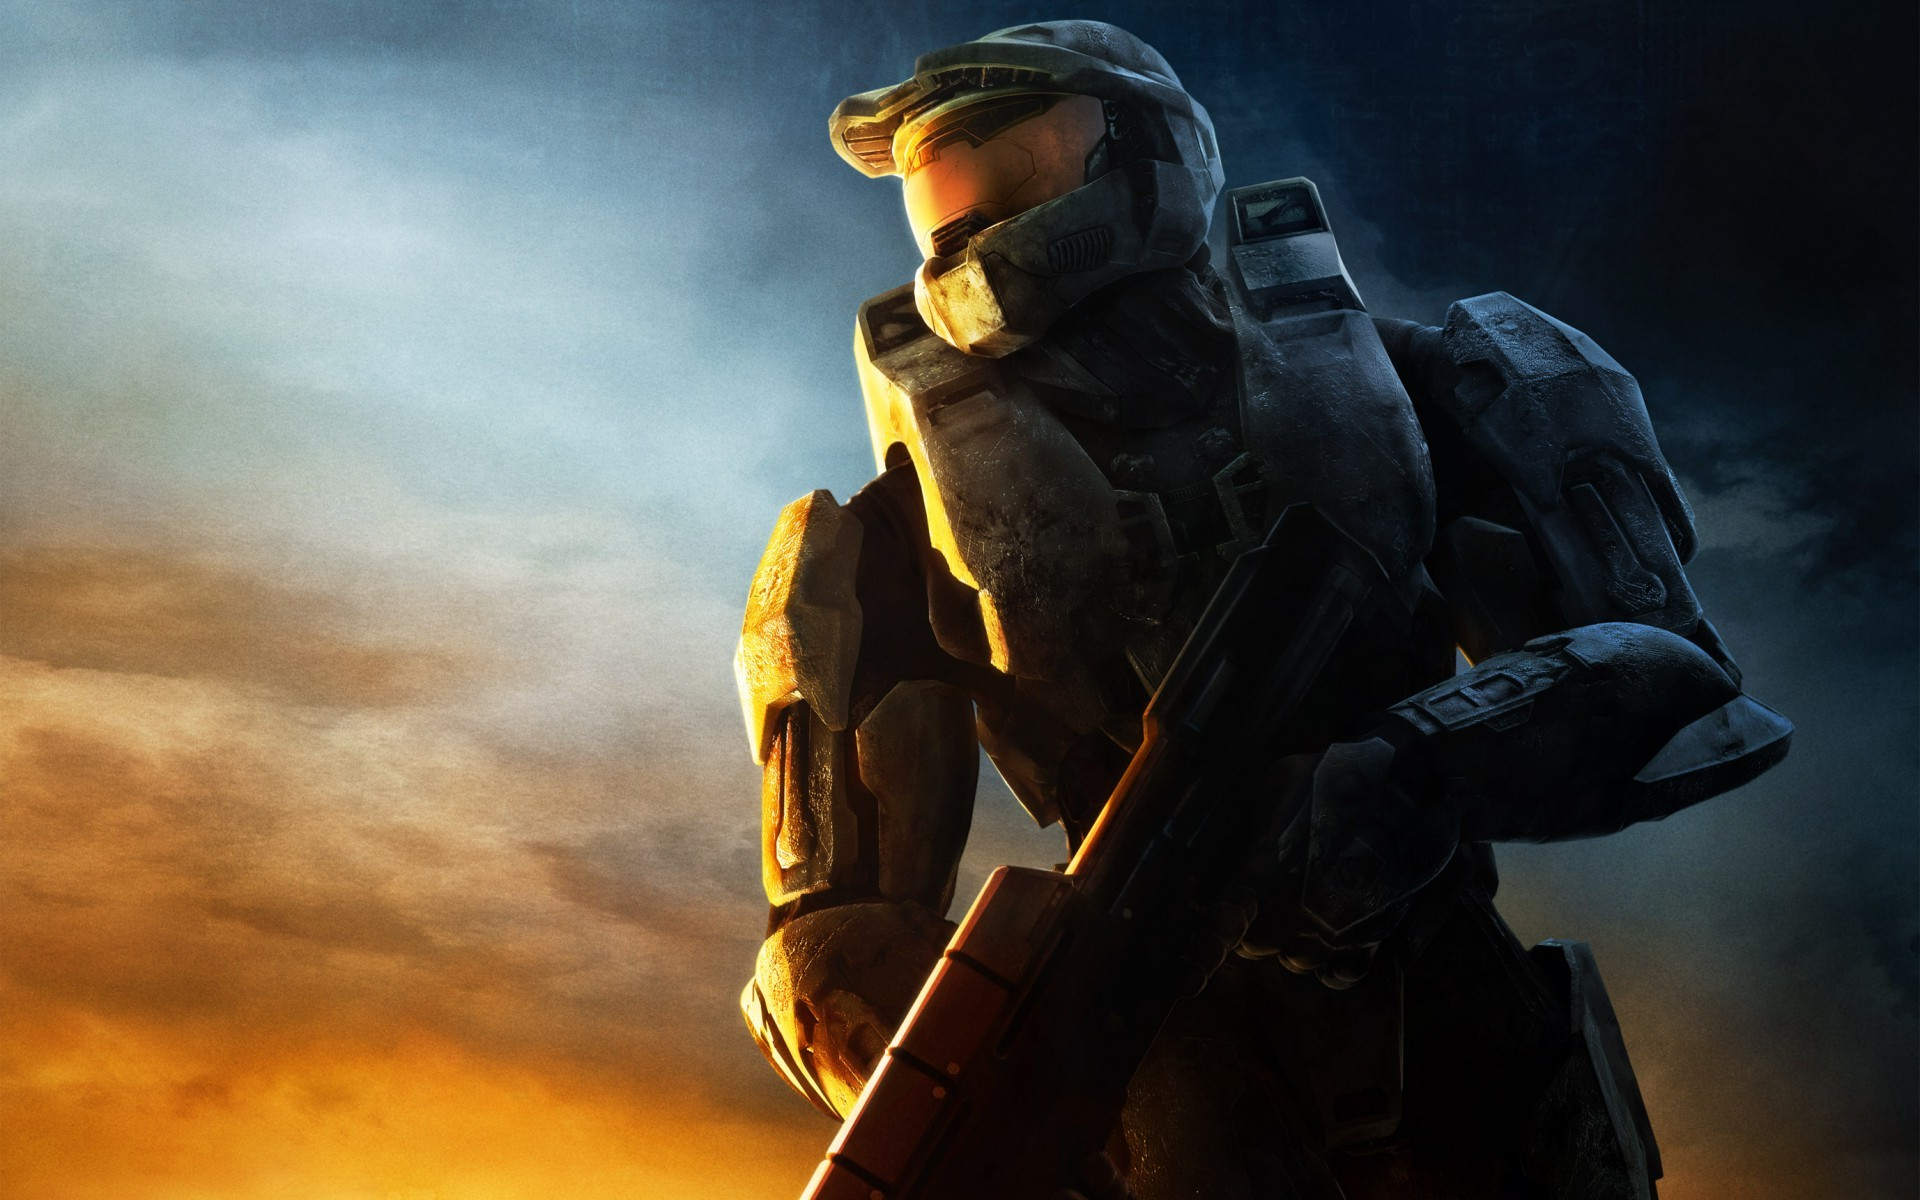 1920x1200 Halo, Halo 3, Master Chief, Video Games Wallpapers HD / Desktop and Mobile  Backgrounds